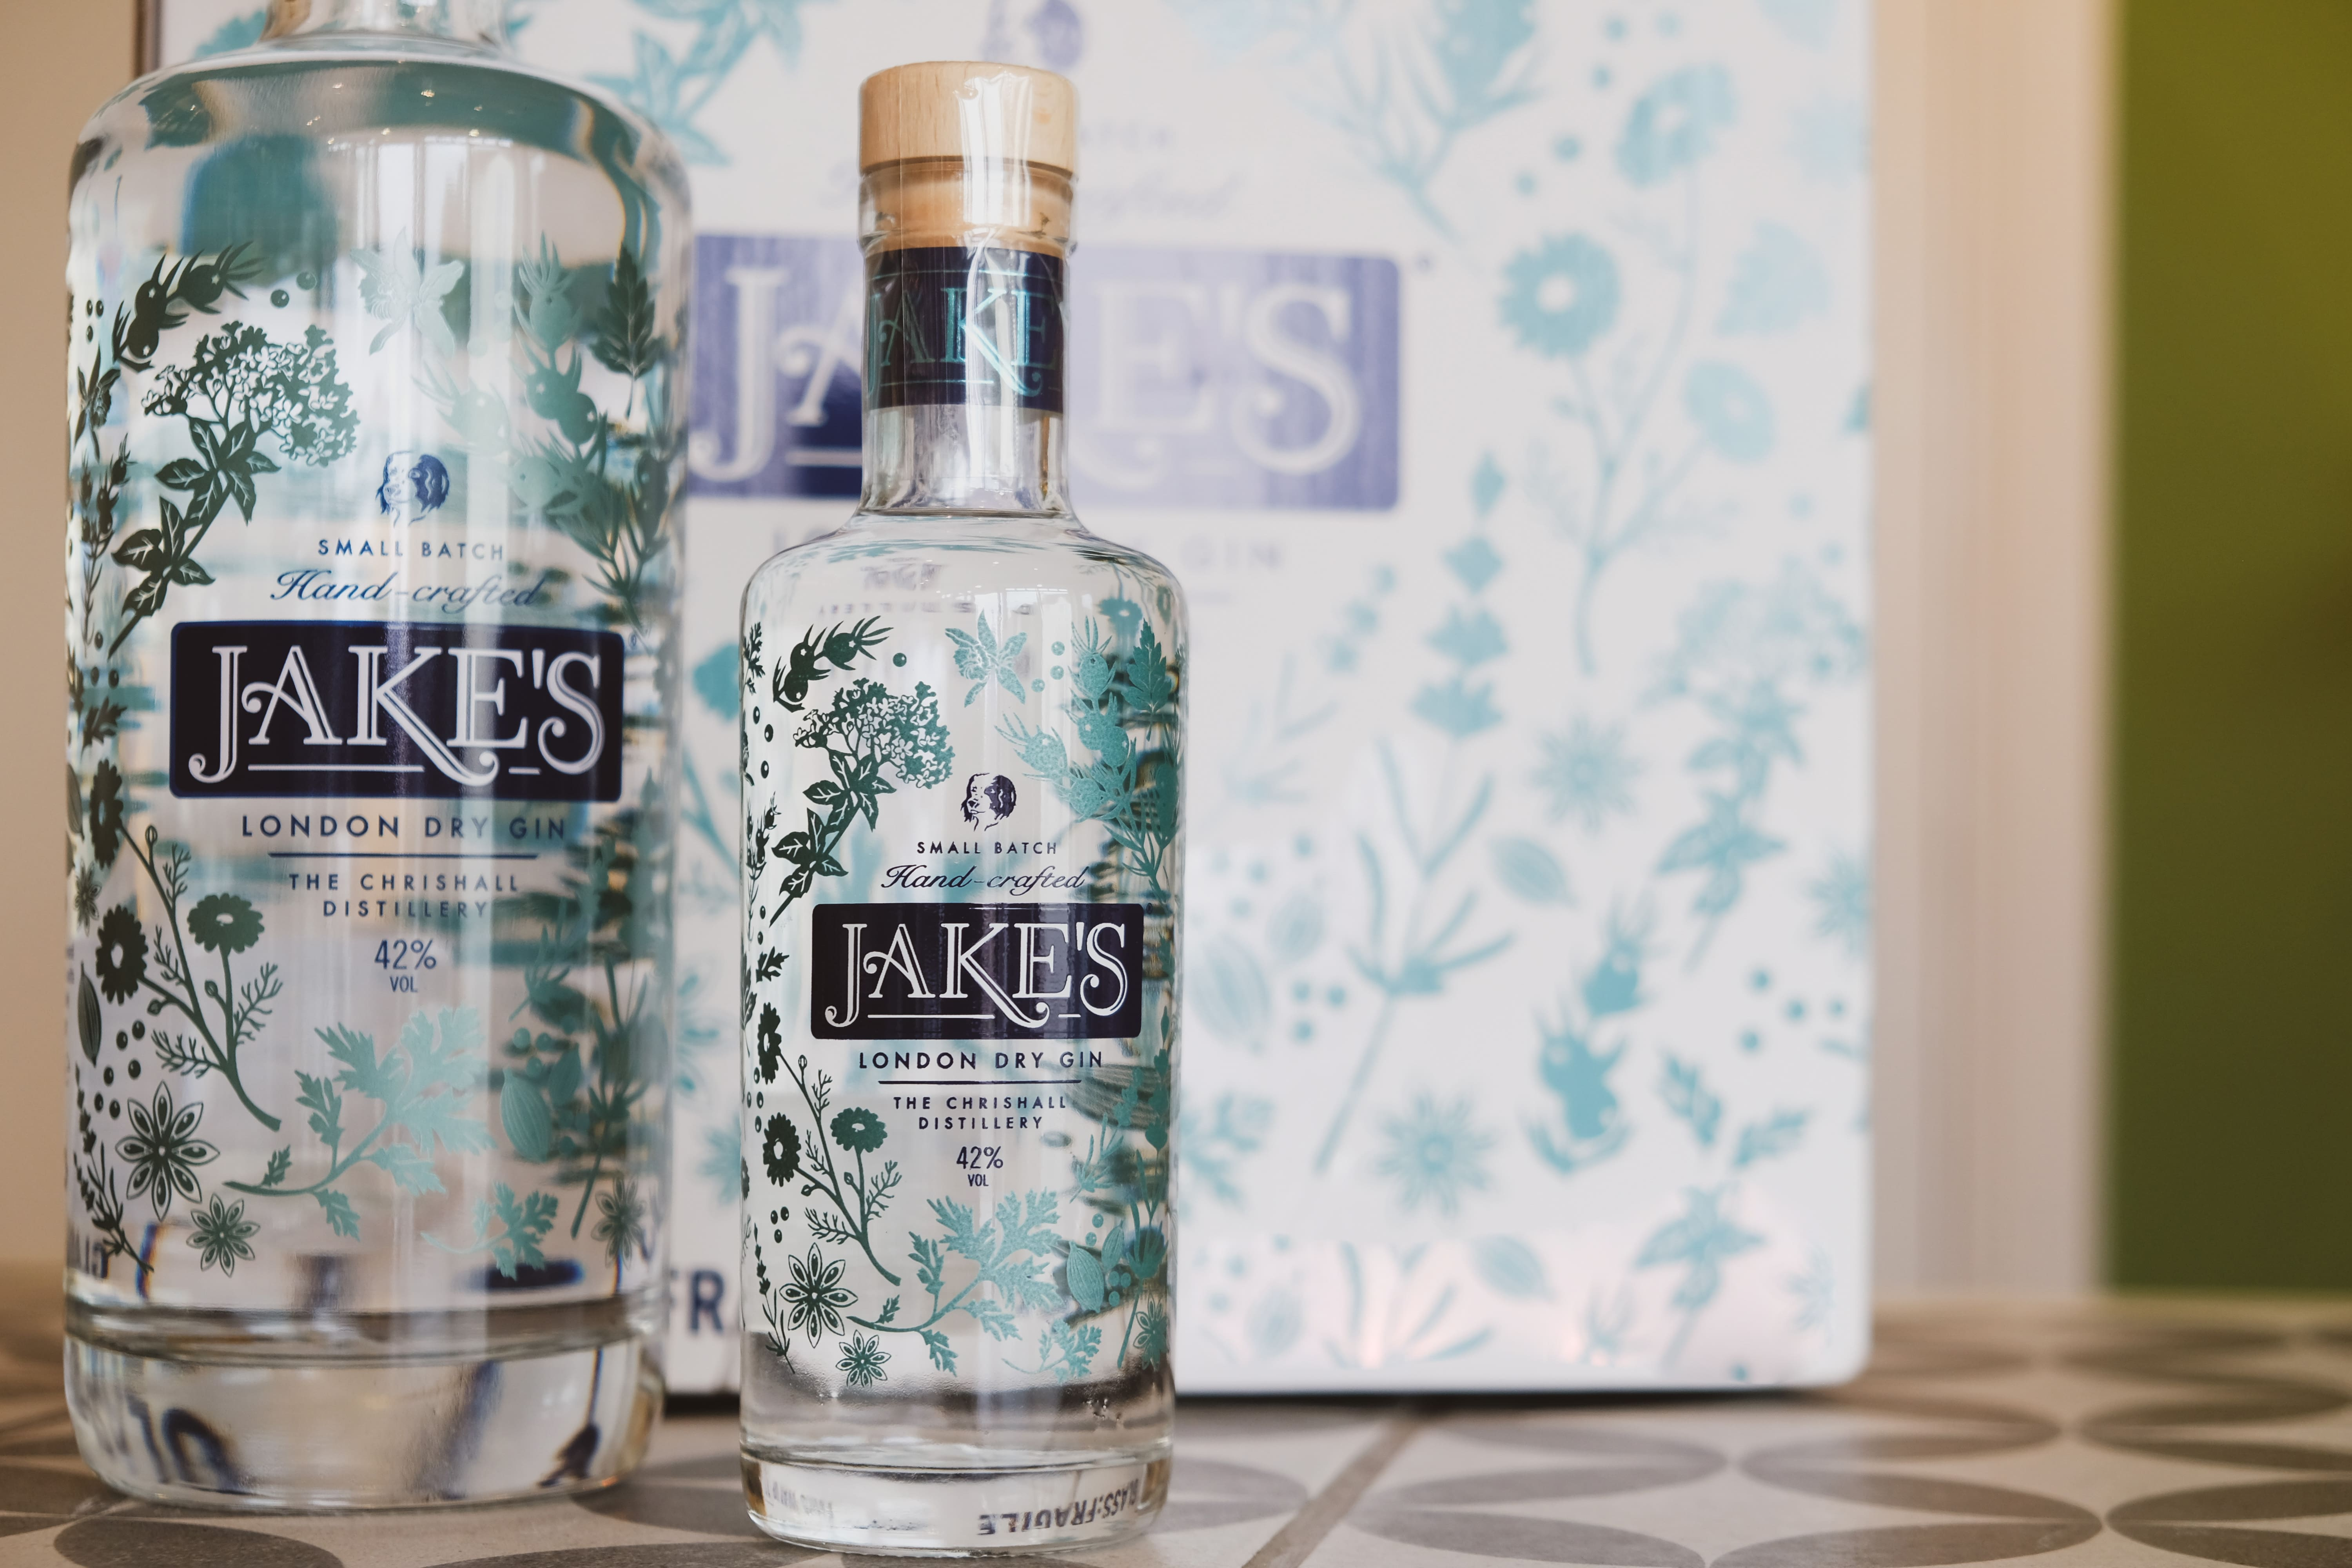 Jake's gin available at the Essex Produce Co. in Kelvedon, Essex.